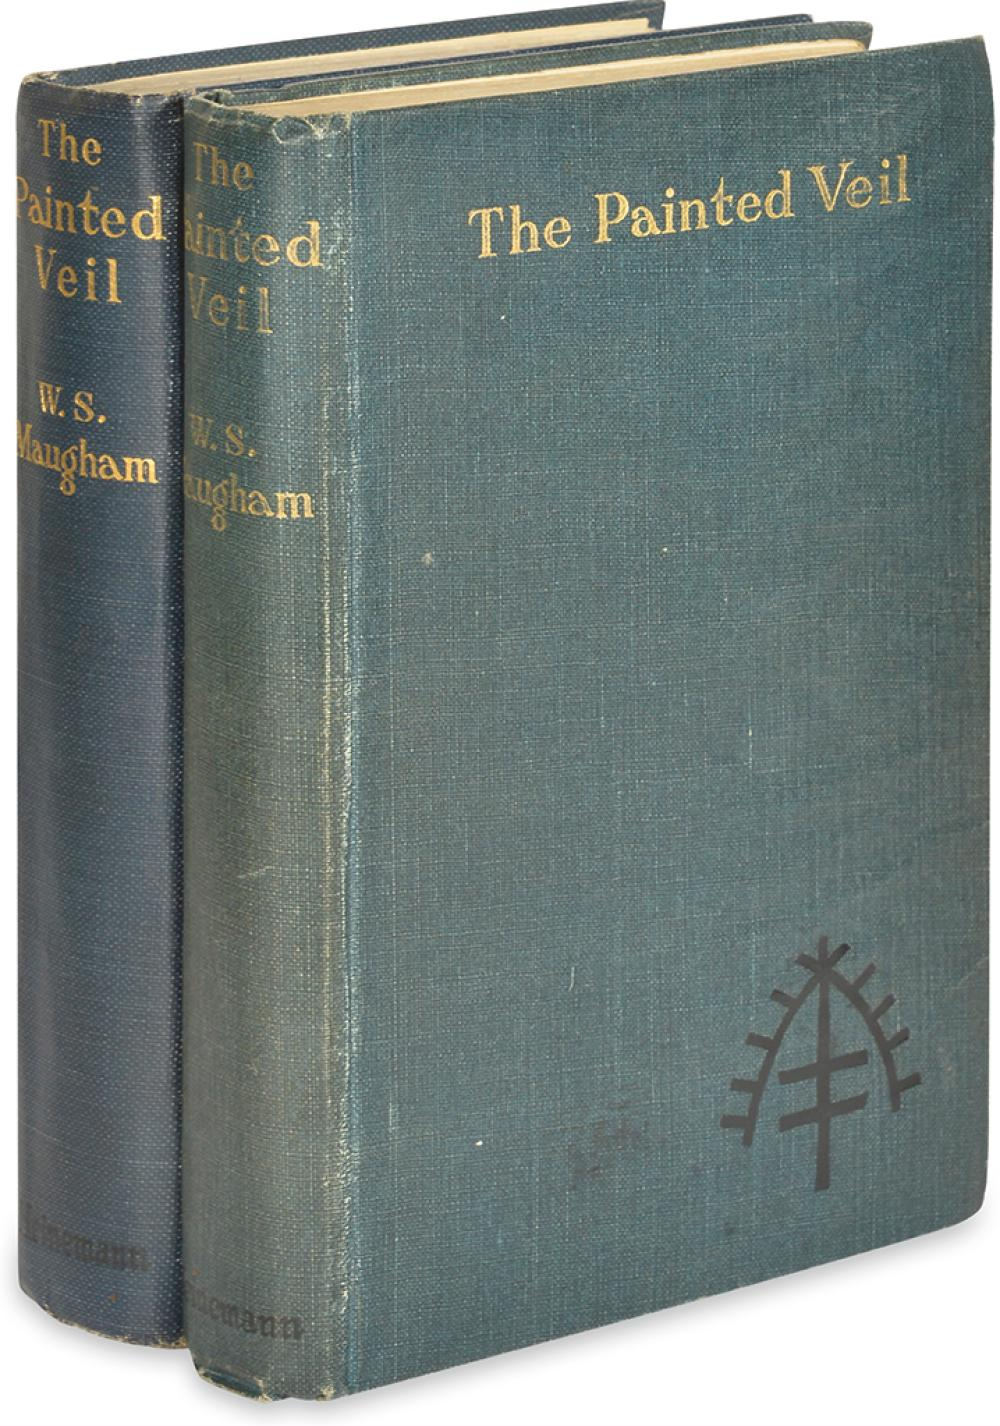 MAUGHAM, W. SOMERSET. The Painted Veil.